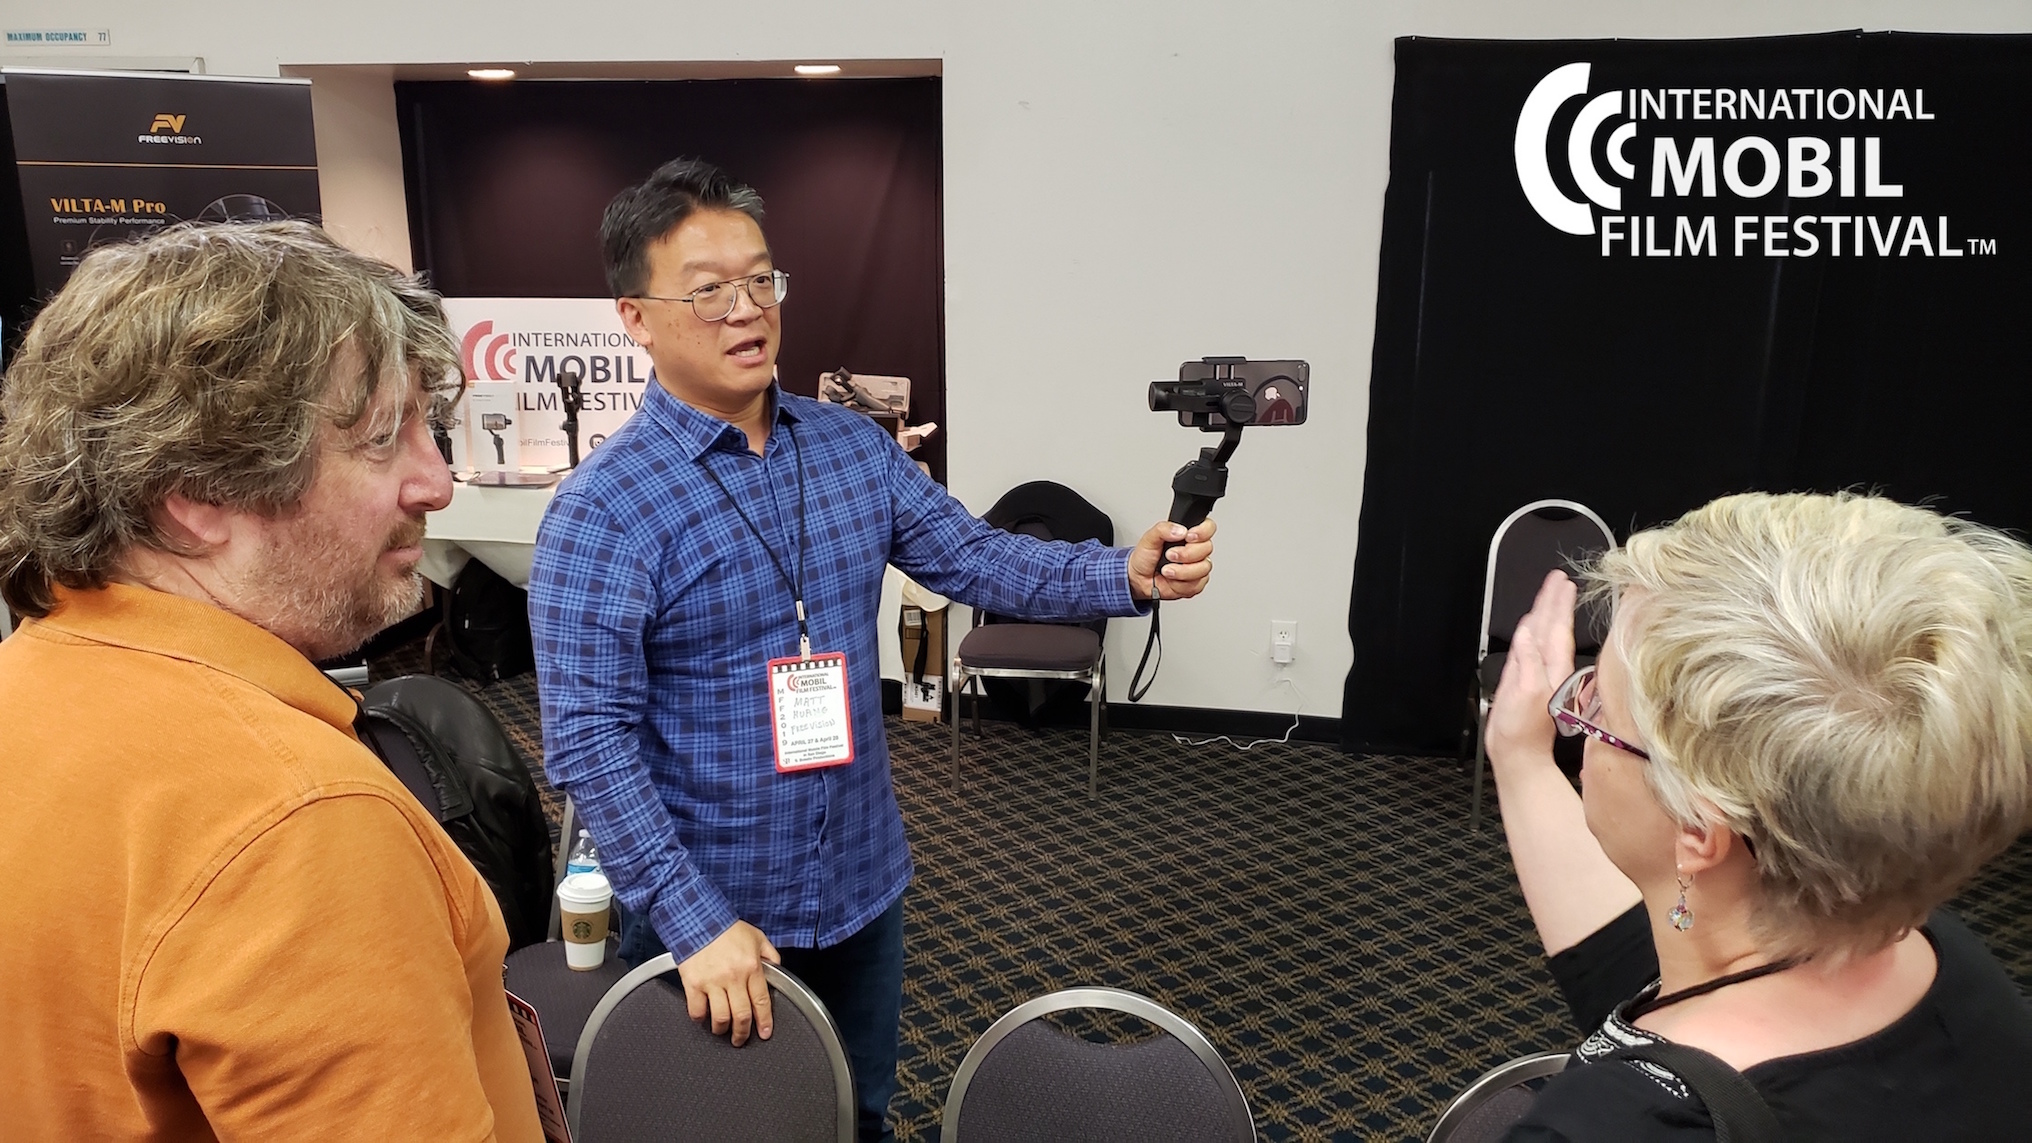 FreeVision Exhibitor Matt Huang gimbal demo with Steve Peterson and Dania Eliot filmmakers.